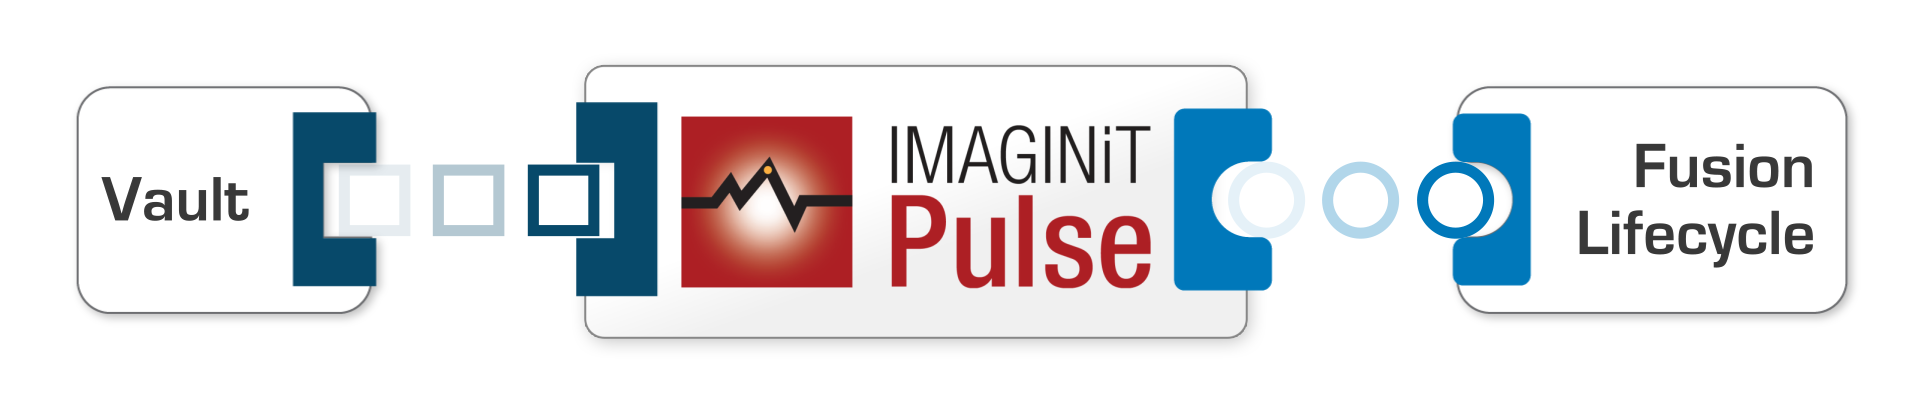 IMAGINiT_Pulse_cropped636638279475727578